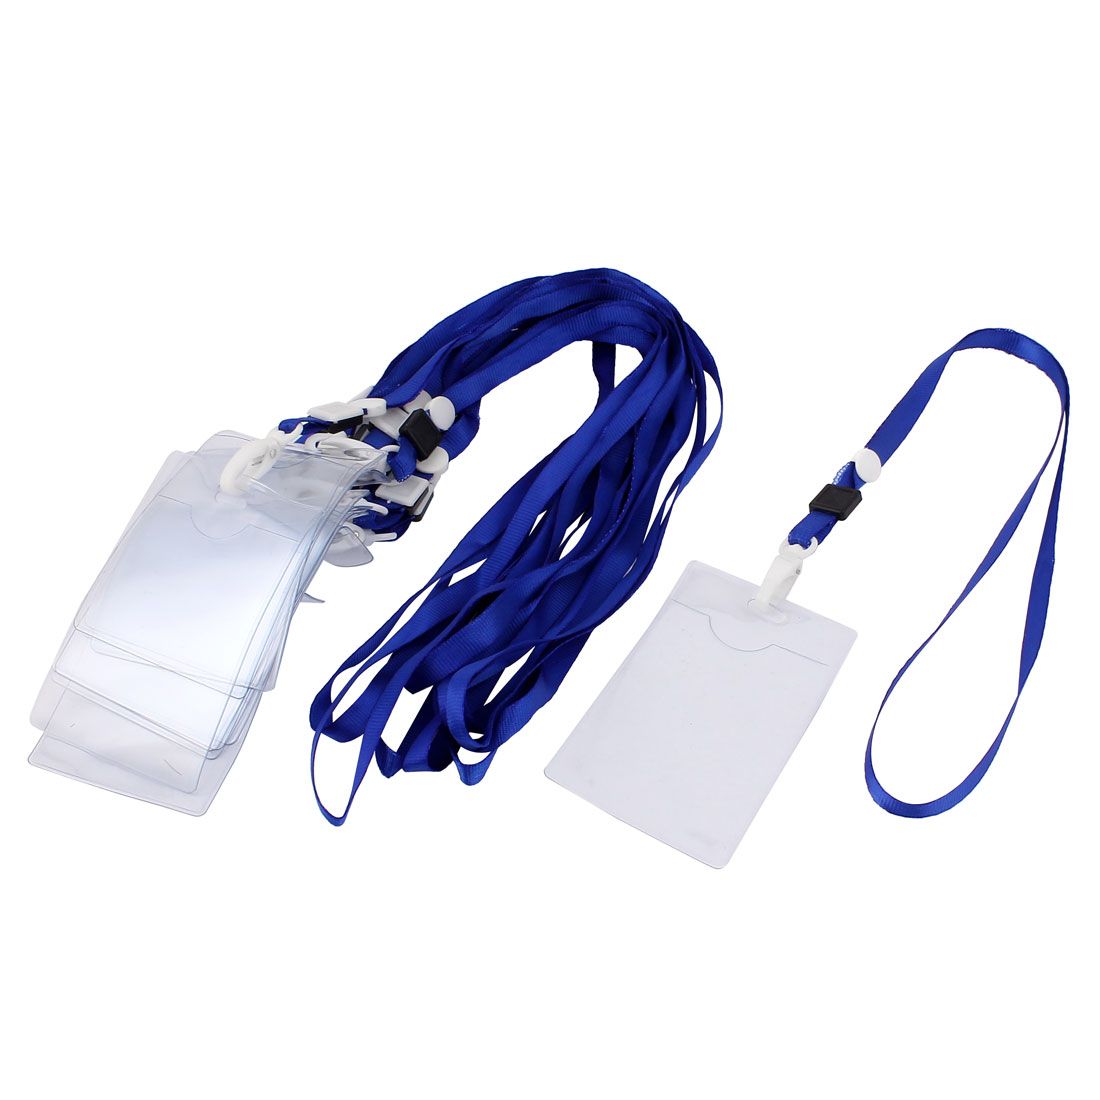 Unique Bargains 10 Pcs Plastic ID Card Holder Lanyard Name School Office Bank Students Stationery Blue w Neck Strap